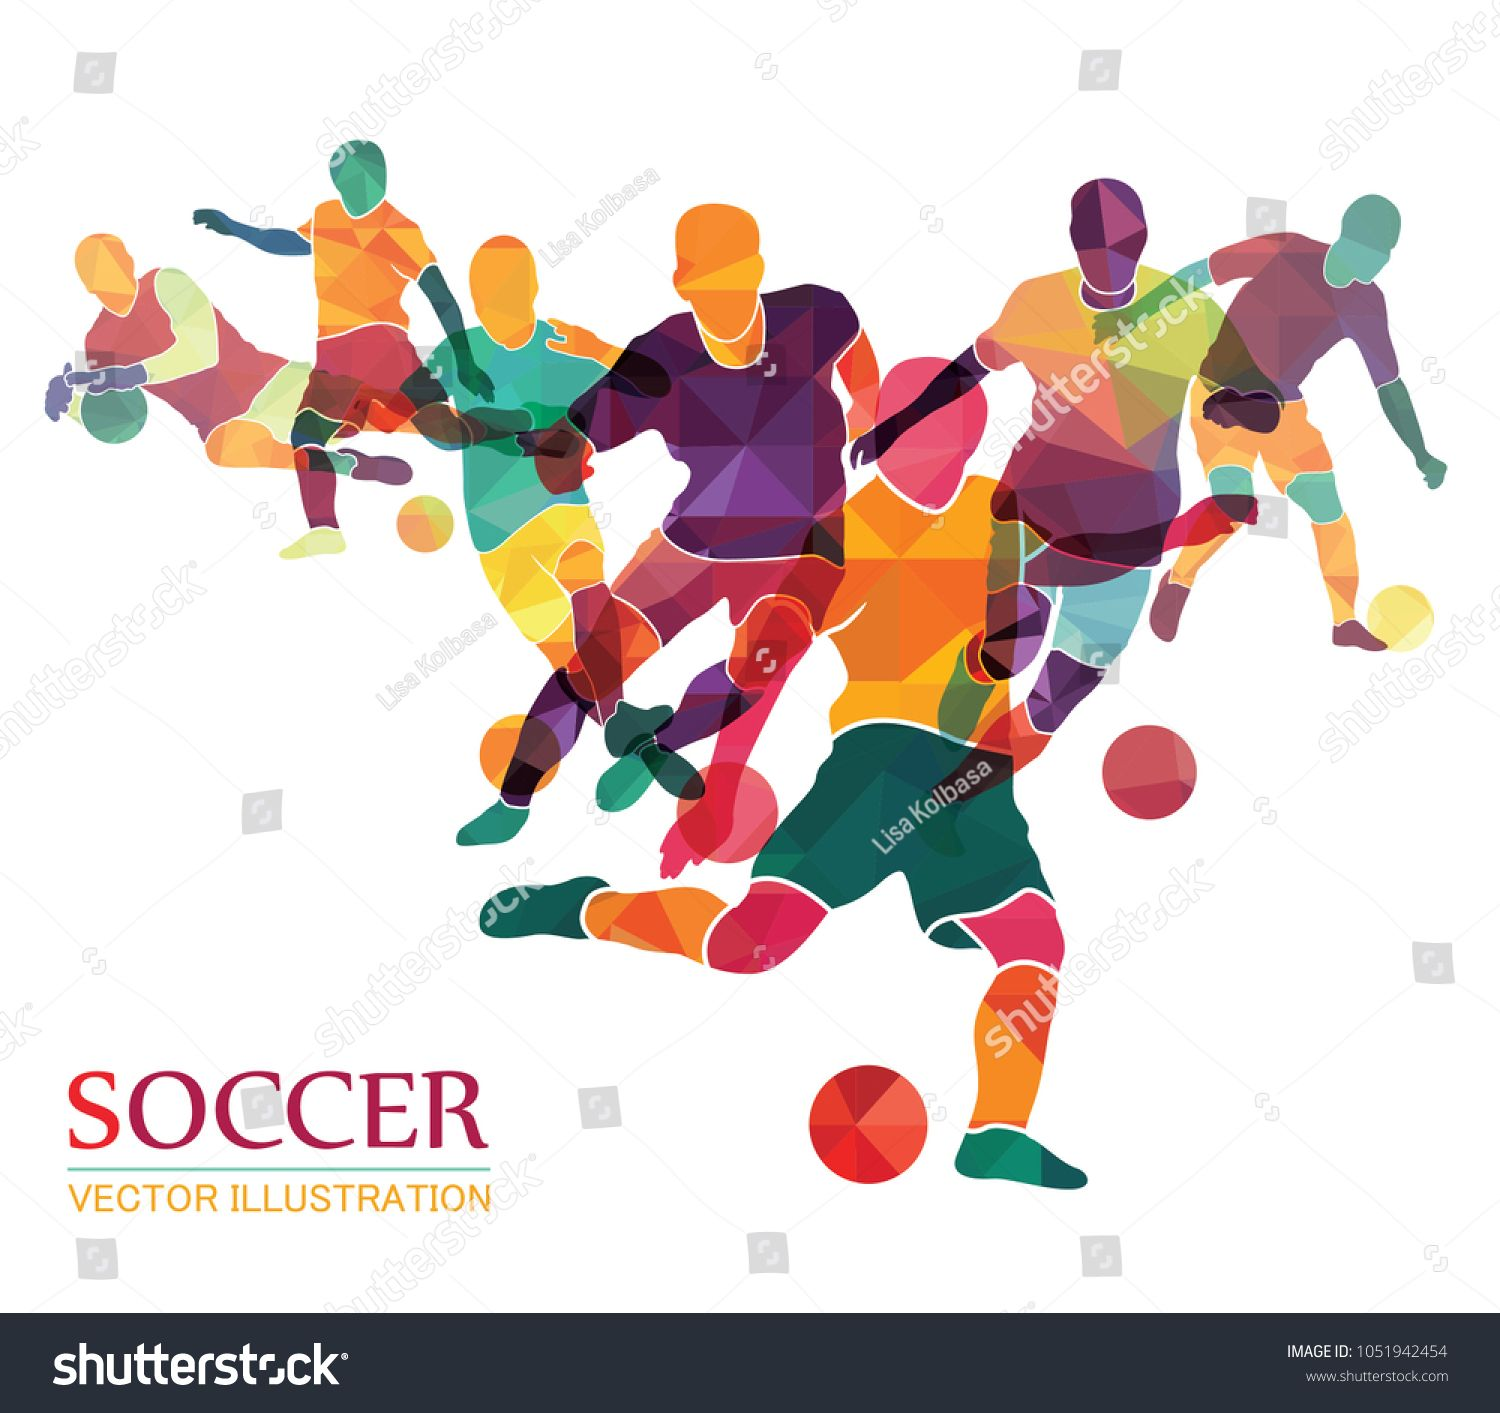 Football Soccer Colorful Background Vector Illustration Football Wallpaper Football Illustration Sports Wallpapers